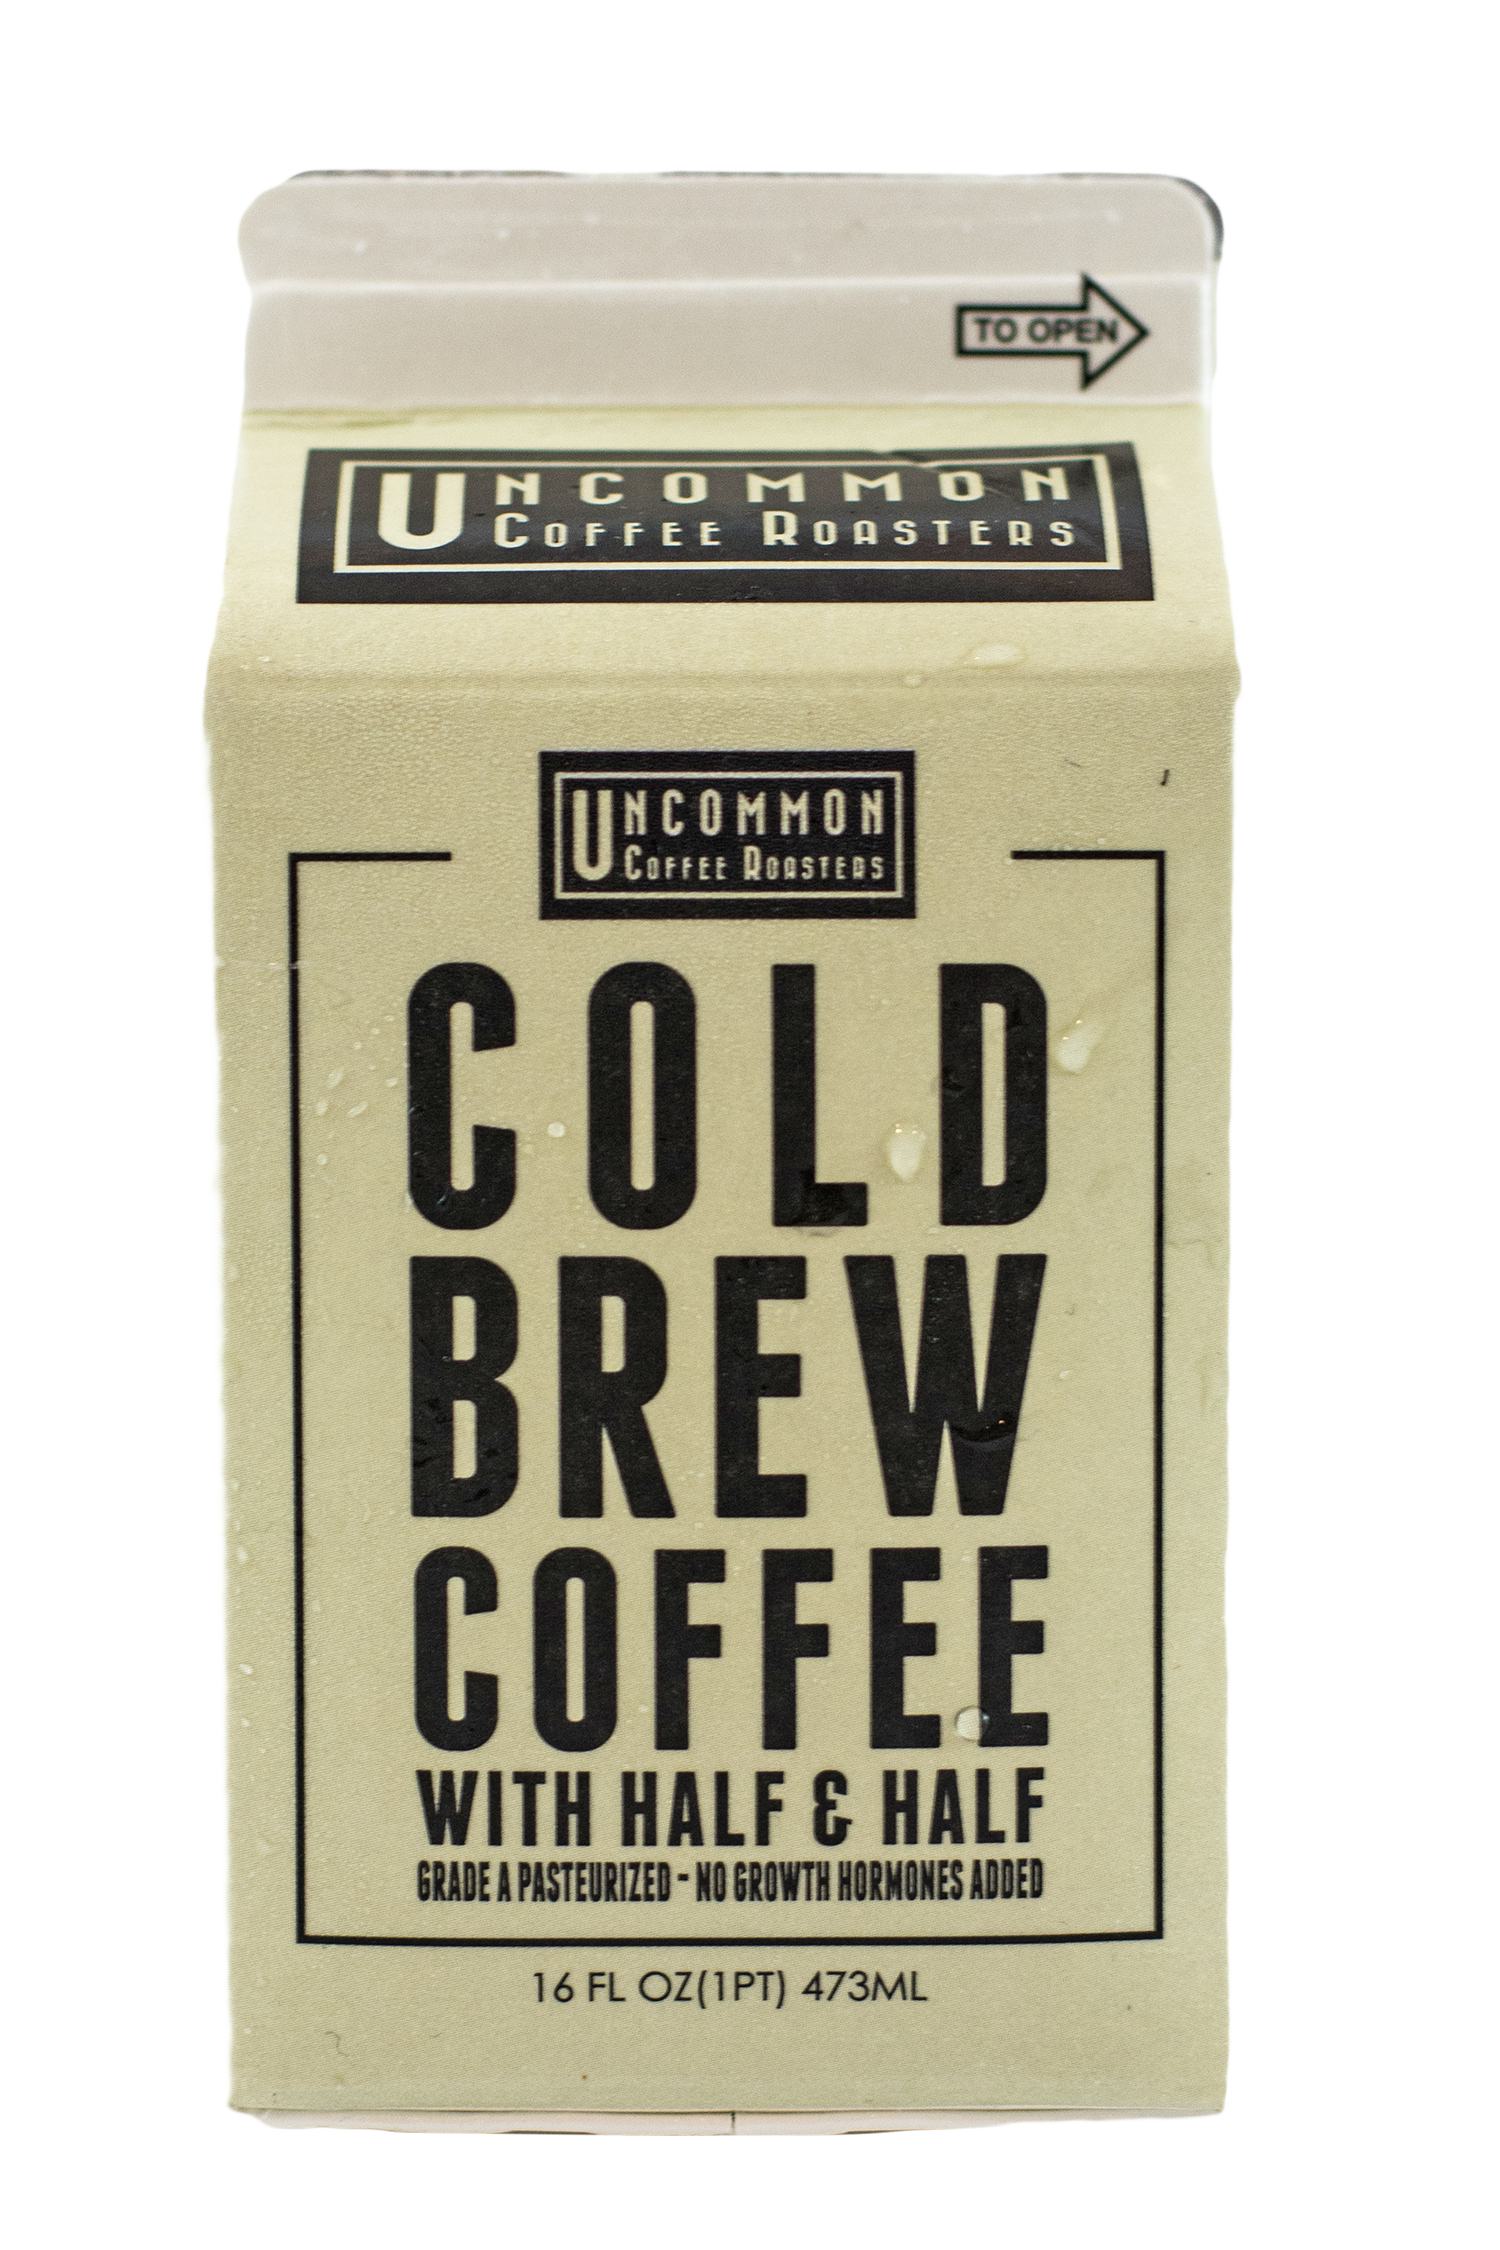 Uncommon Coffee Roasters Cold Brew Coffee with Half and Half